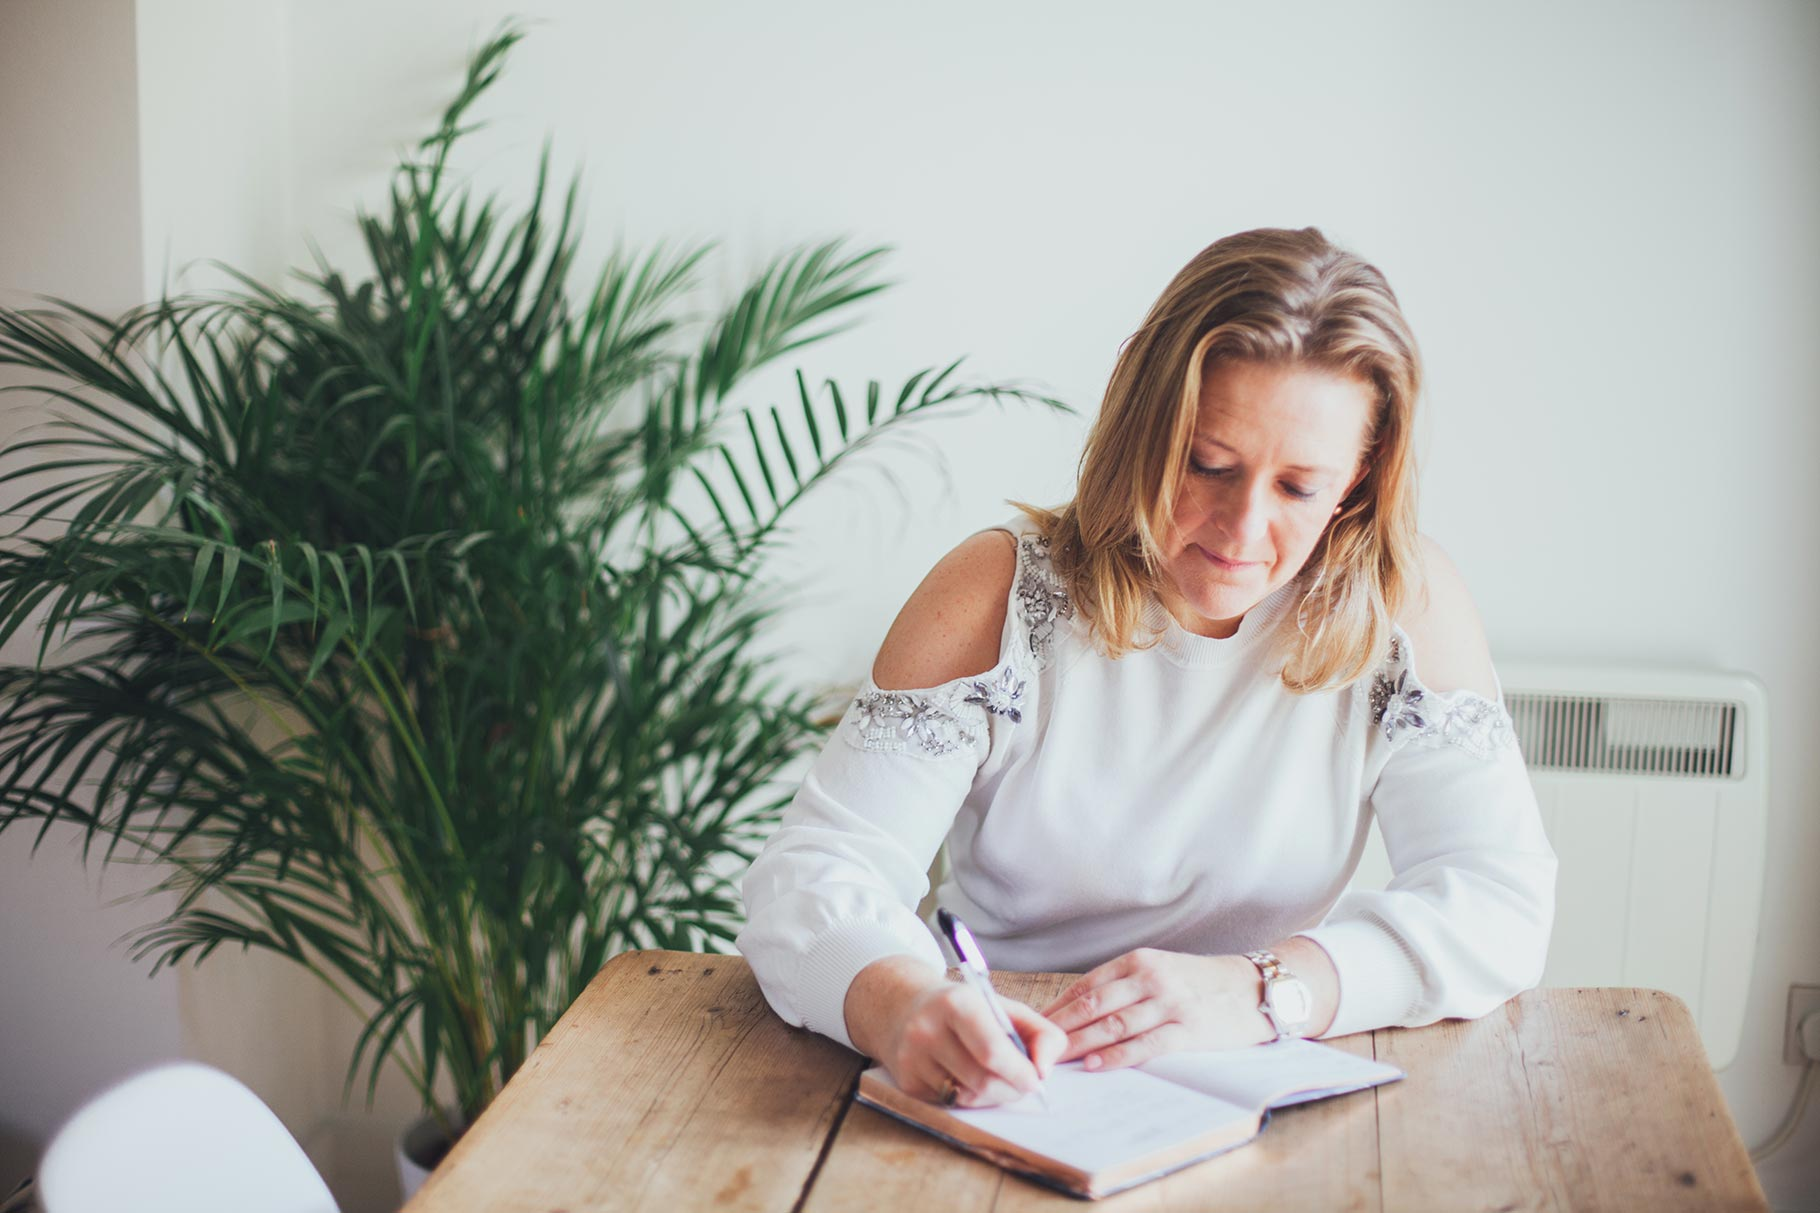 Can gratitude really help with stress management?